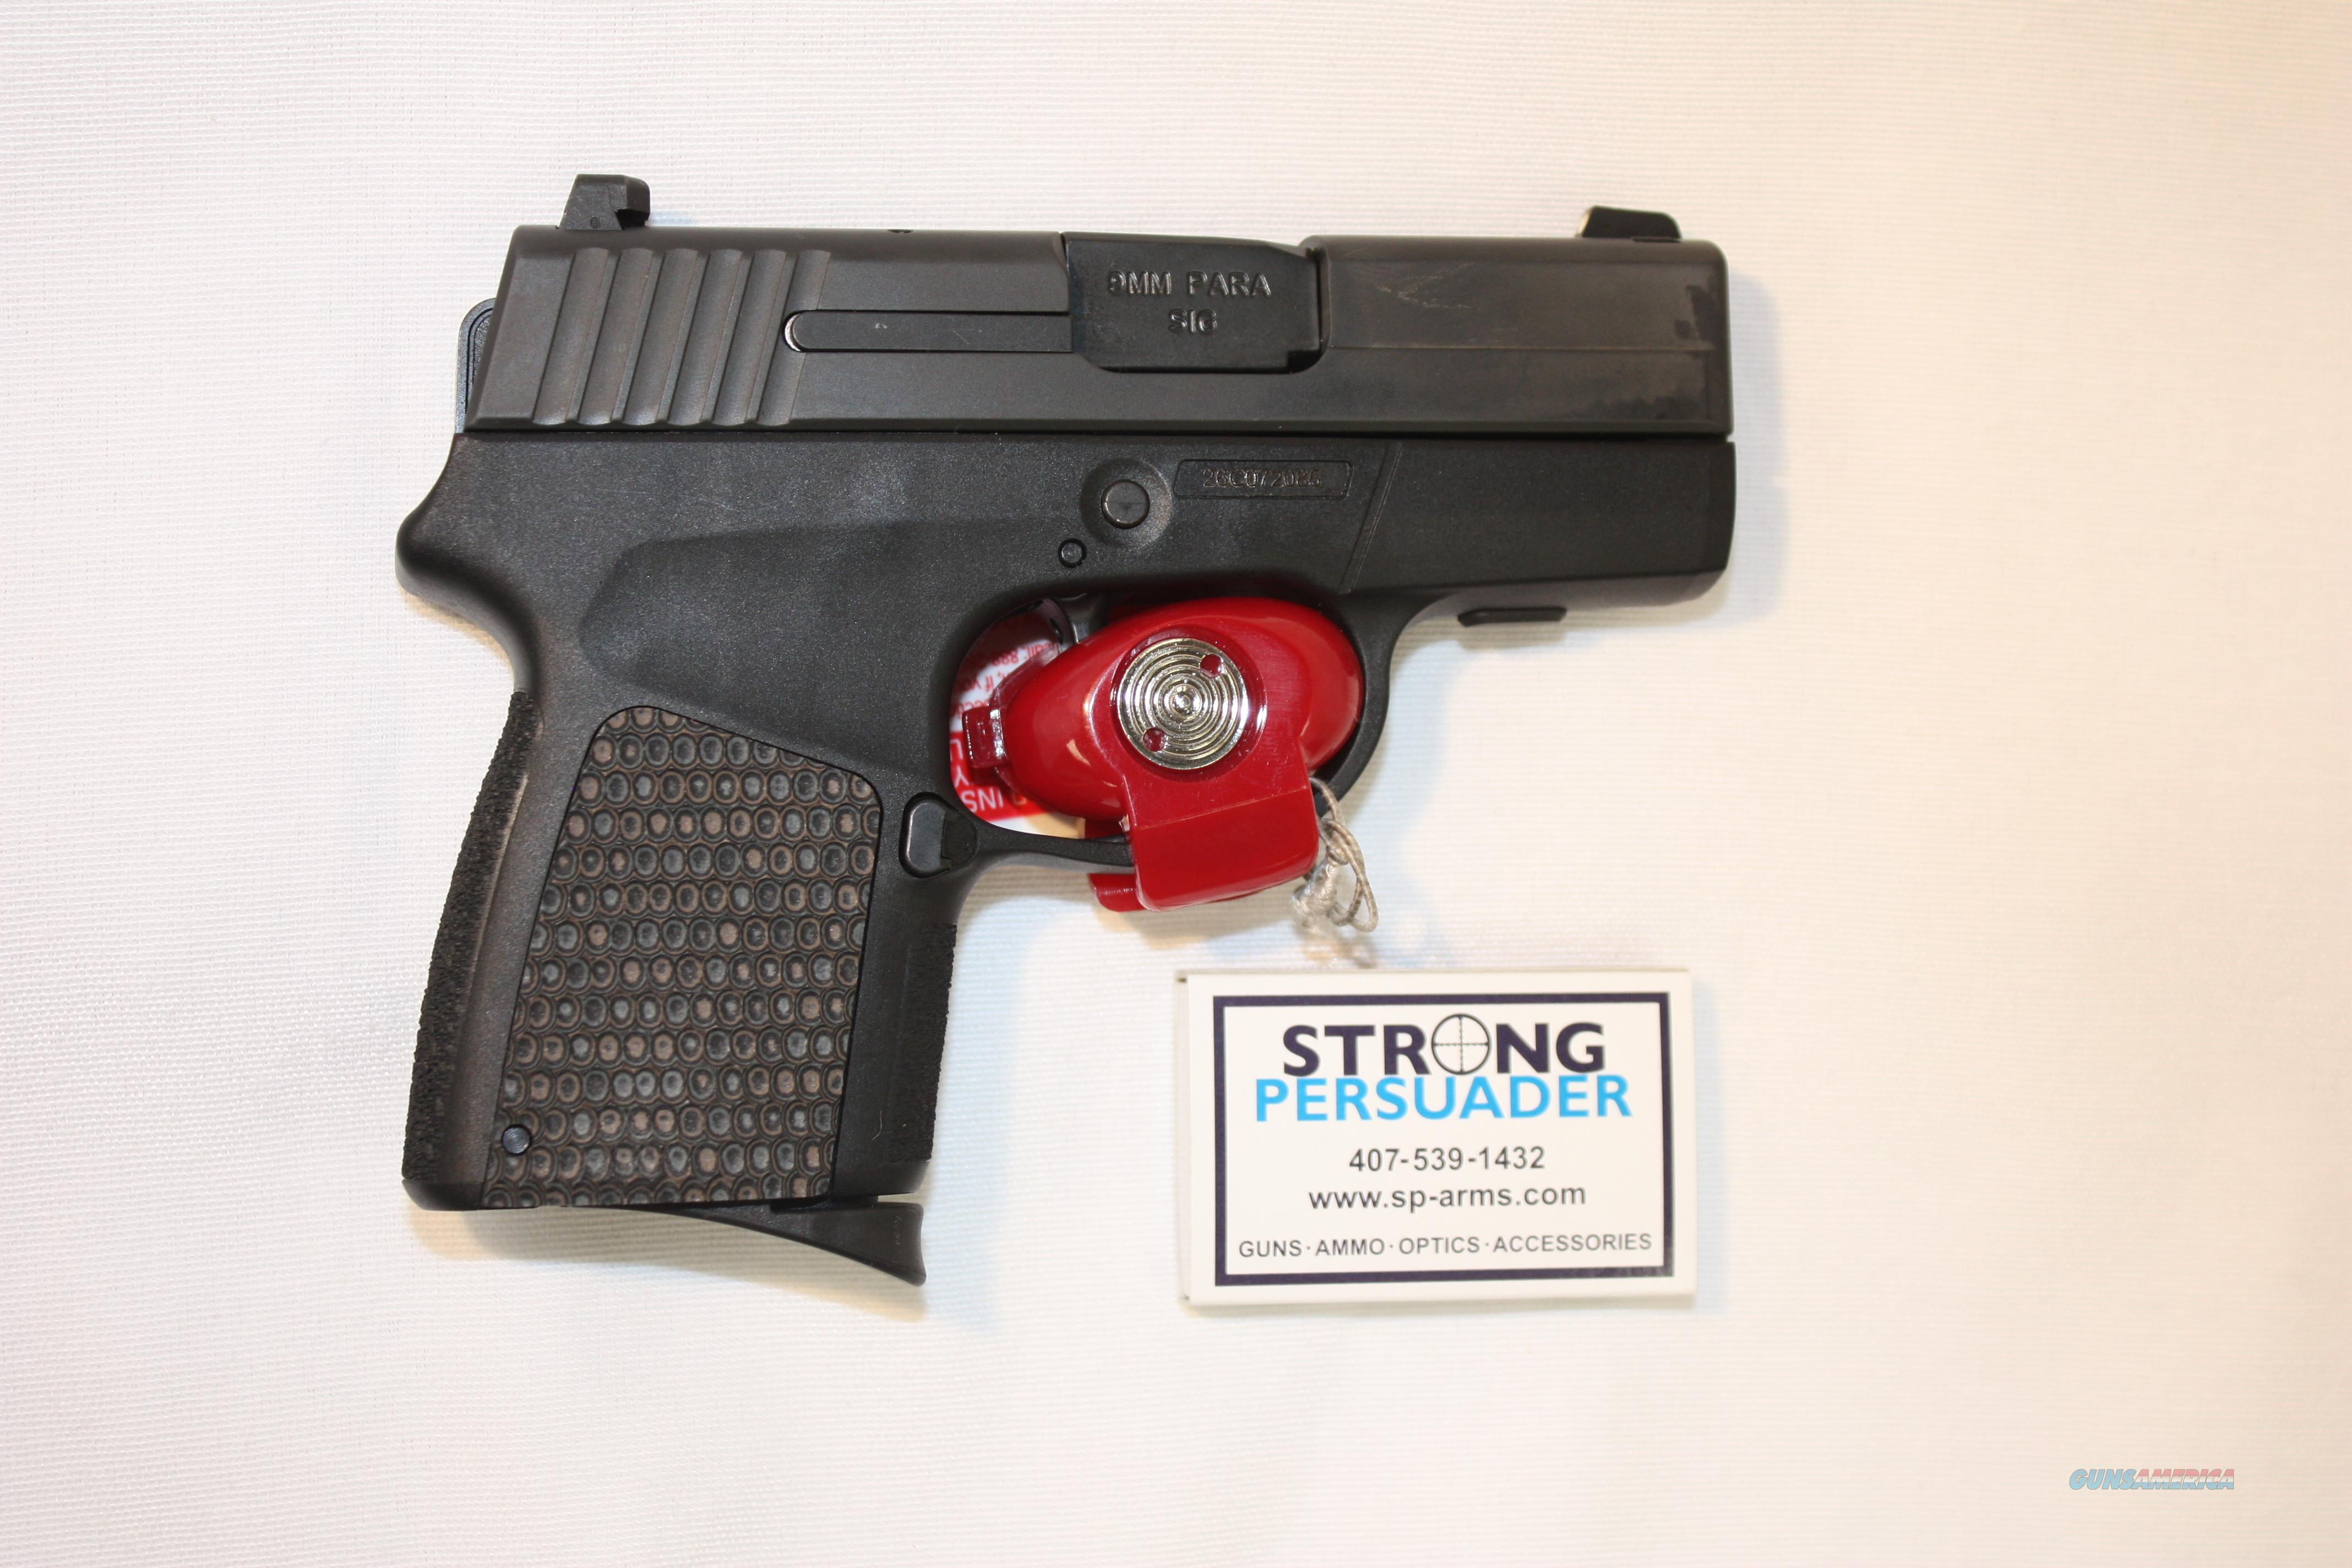 USED Sig Sauer P290RS Every Day Carry Extreme  Guns > Pistols > Sig - Sauer/Sigarms Pistols > P290